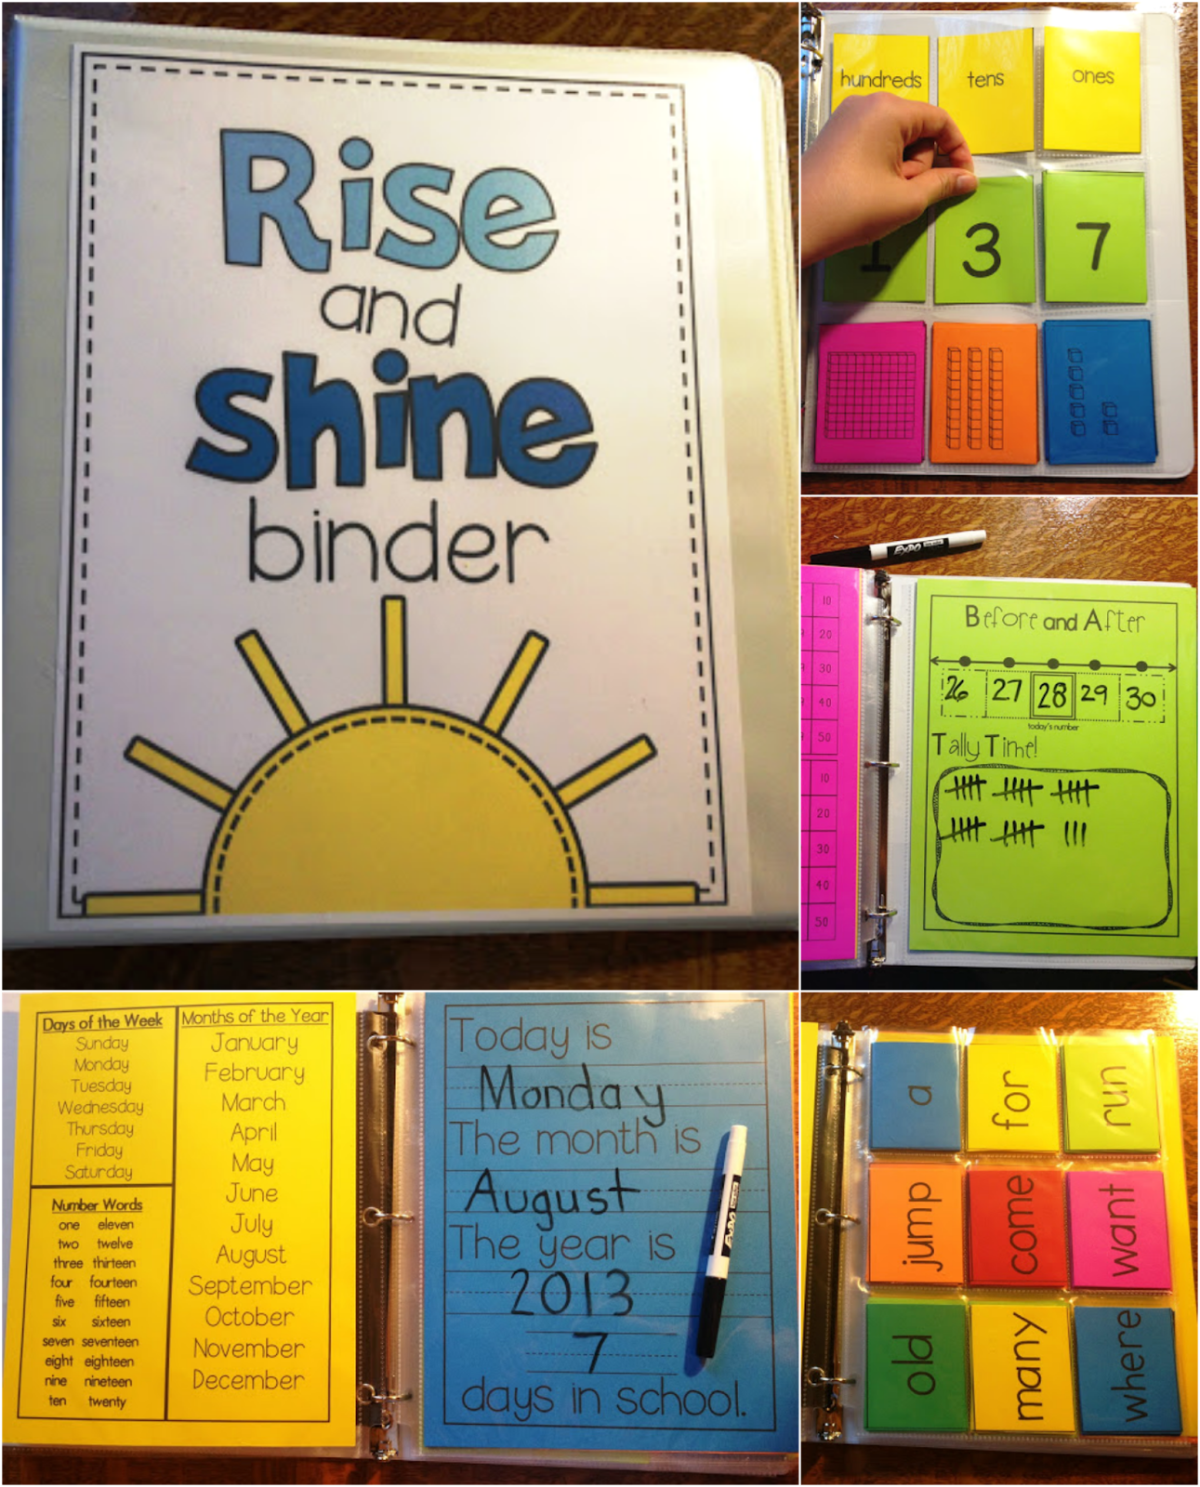 https://www.teacherspayteachers.com/Product/Rise-and-Shine-Binder-762792